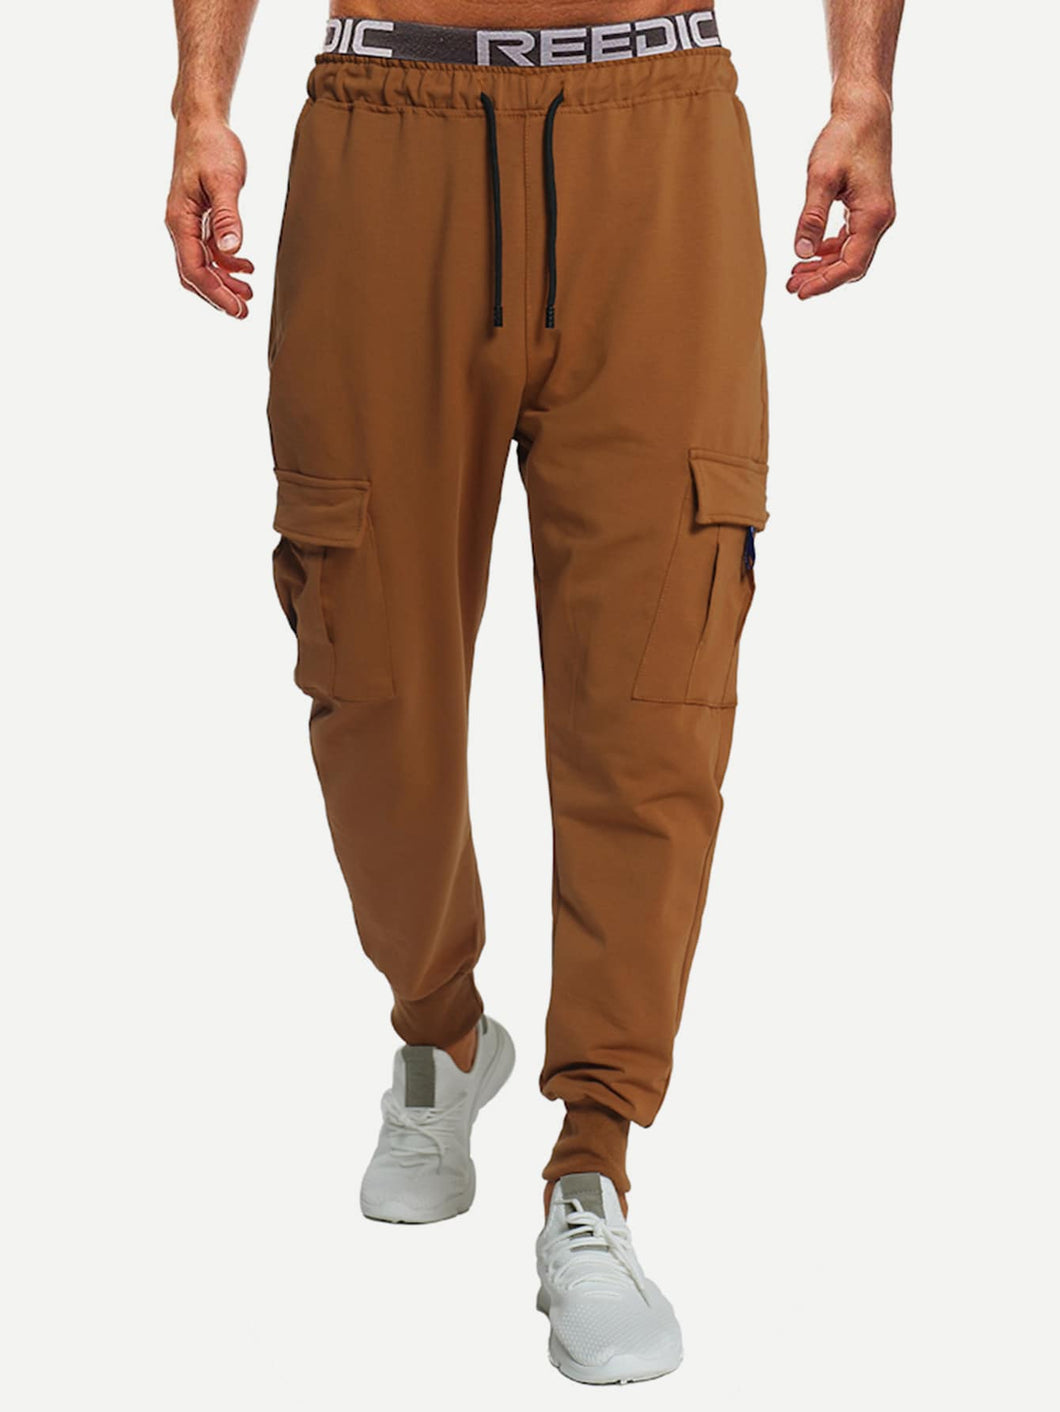 Ralph Sweatpants - Rust (4 Sizes)